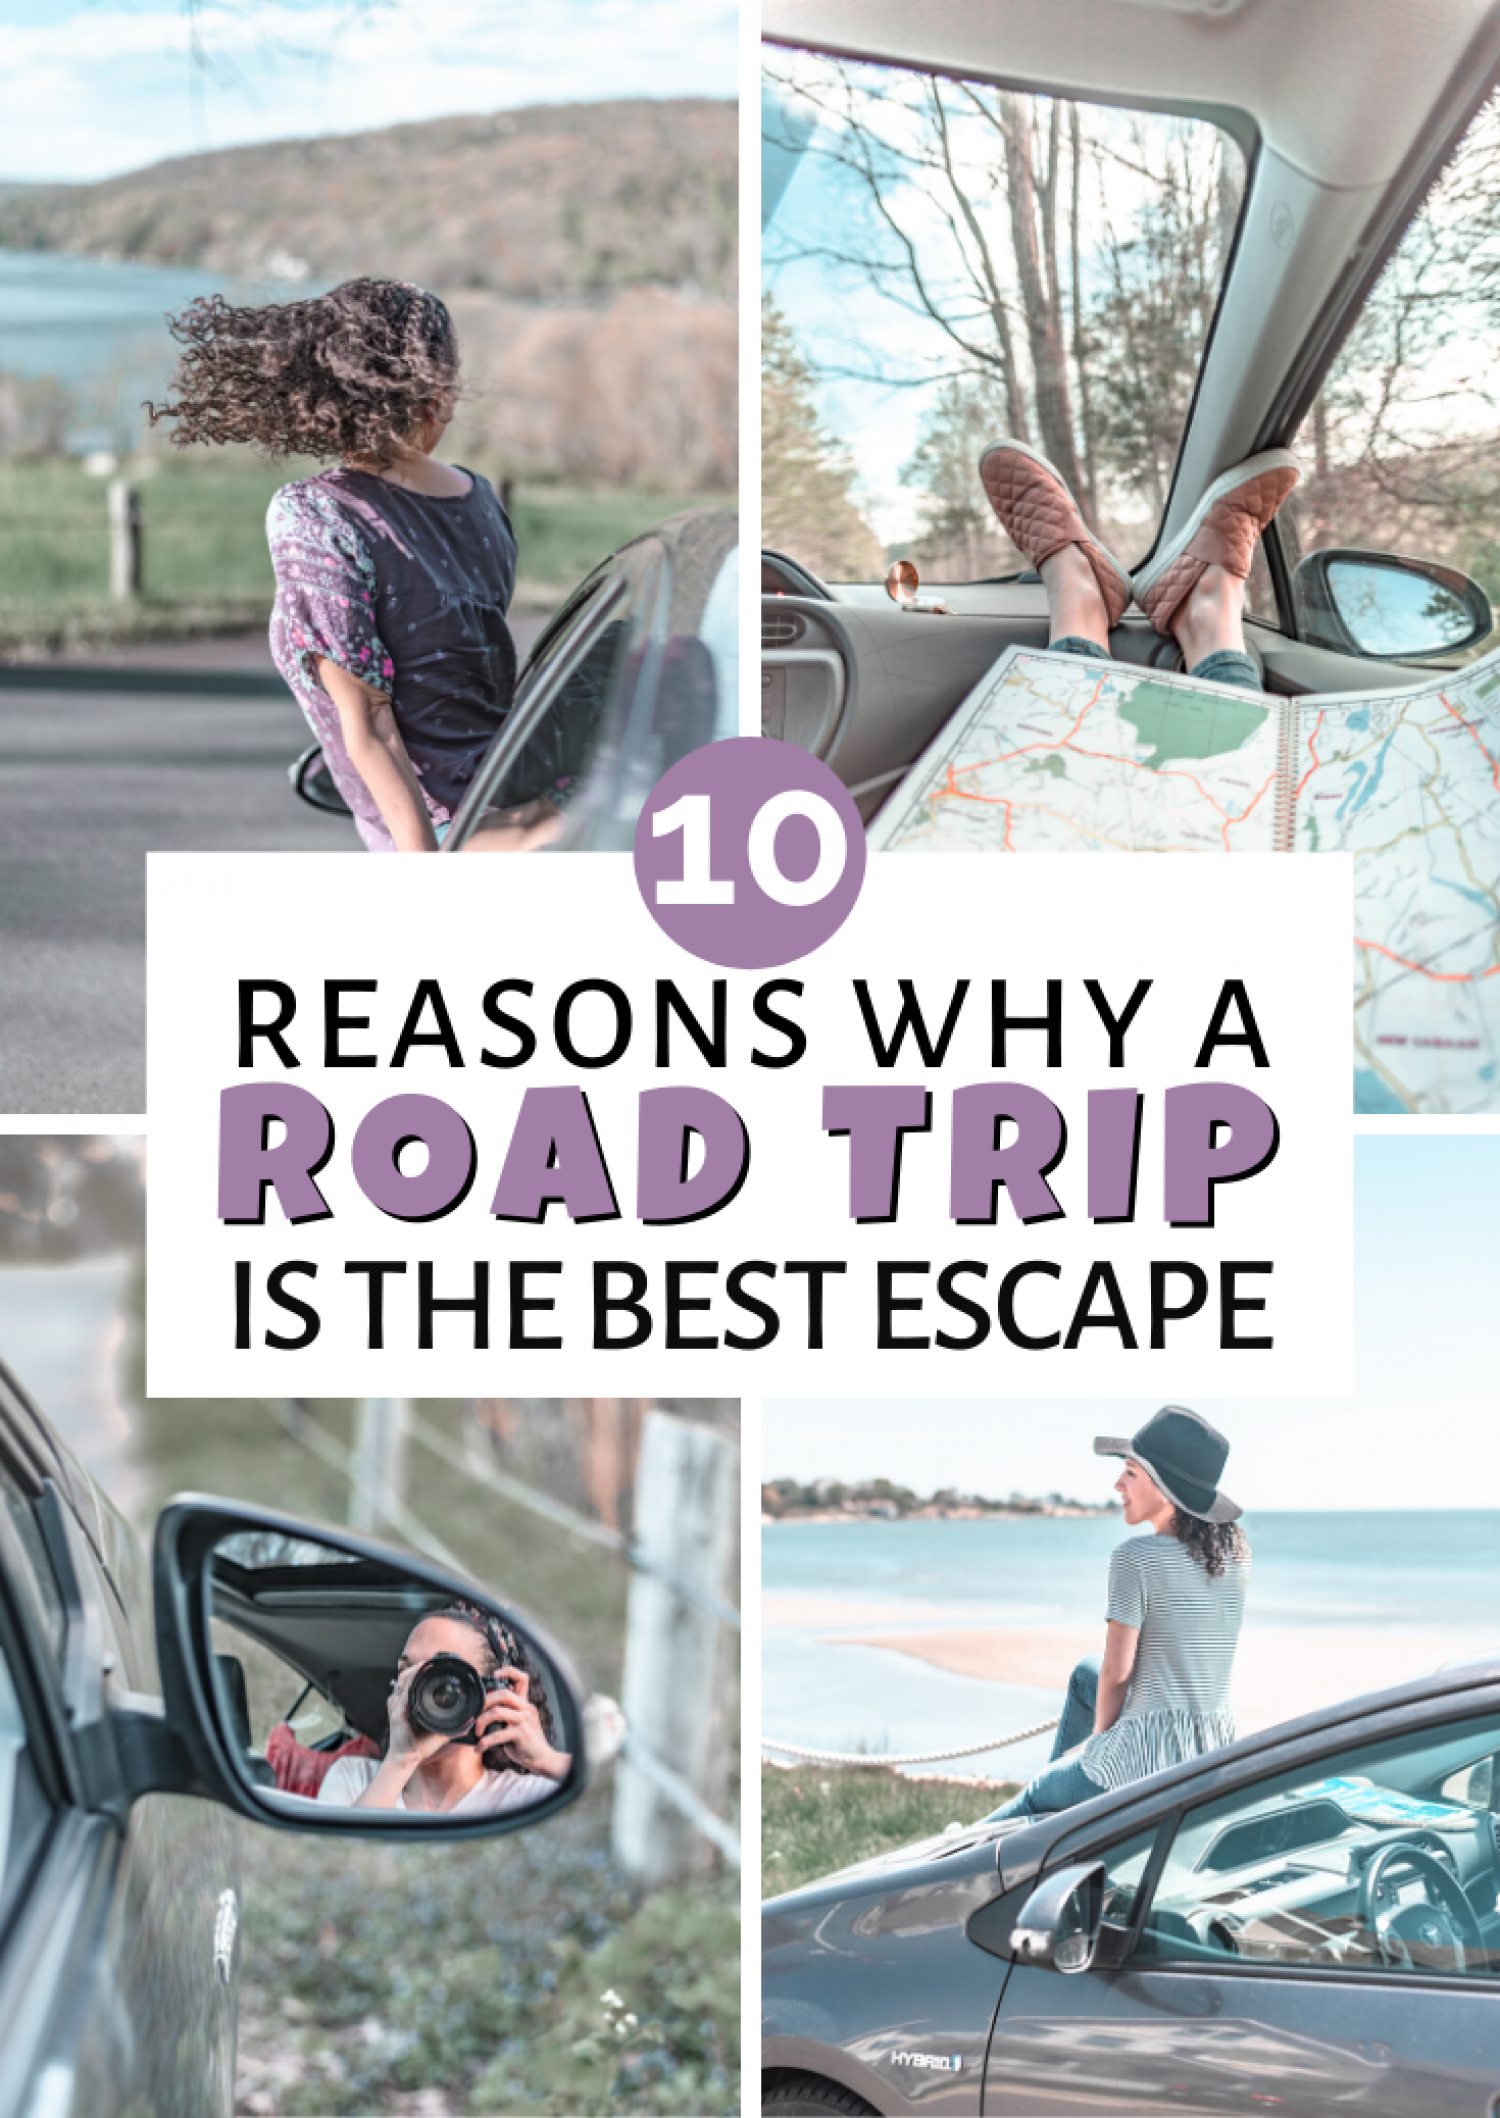 5 Empowering Reasons Why Road Trips are perfect reason to escape Infographic